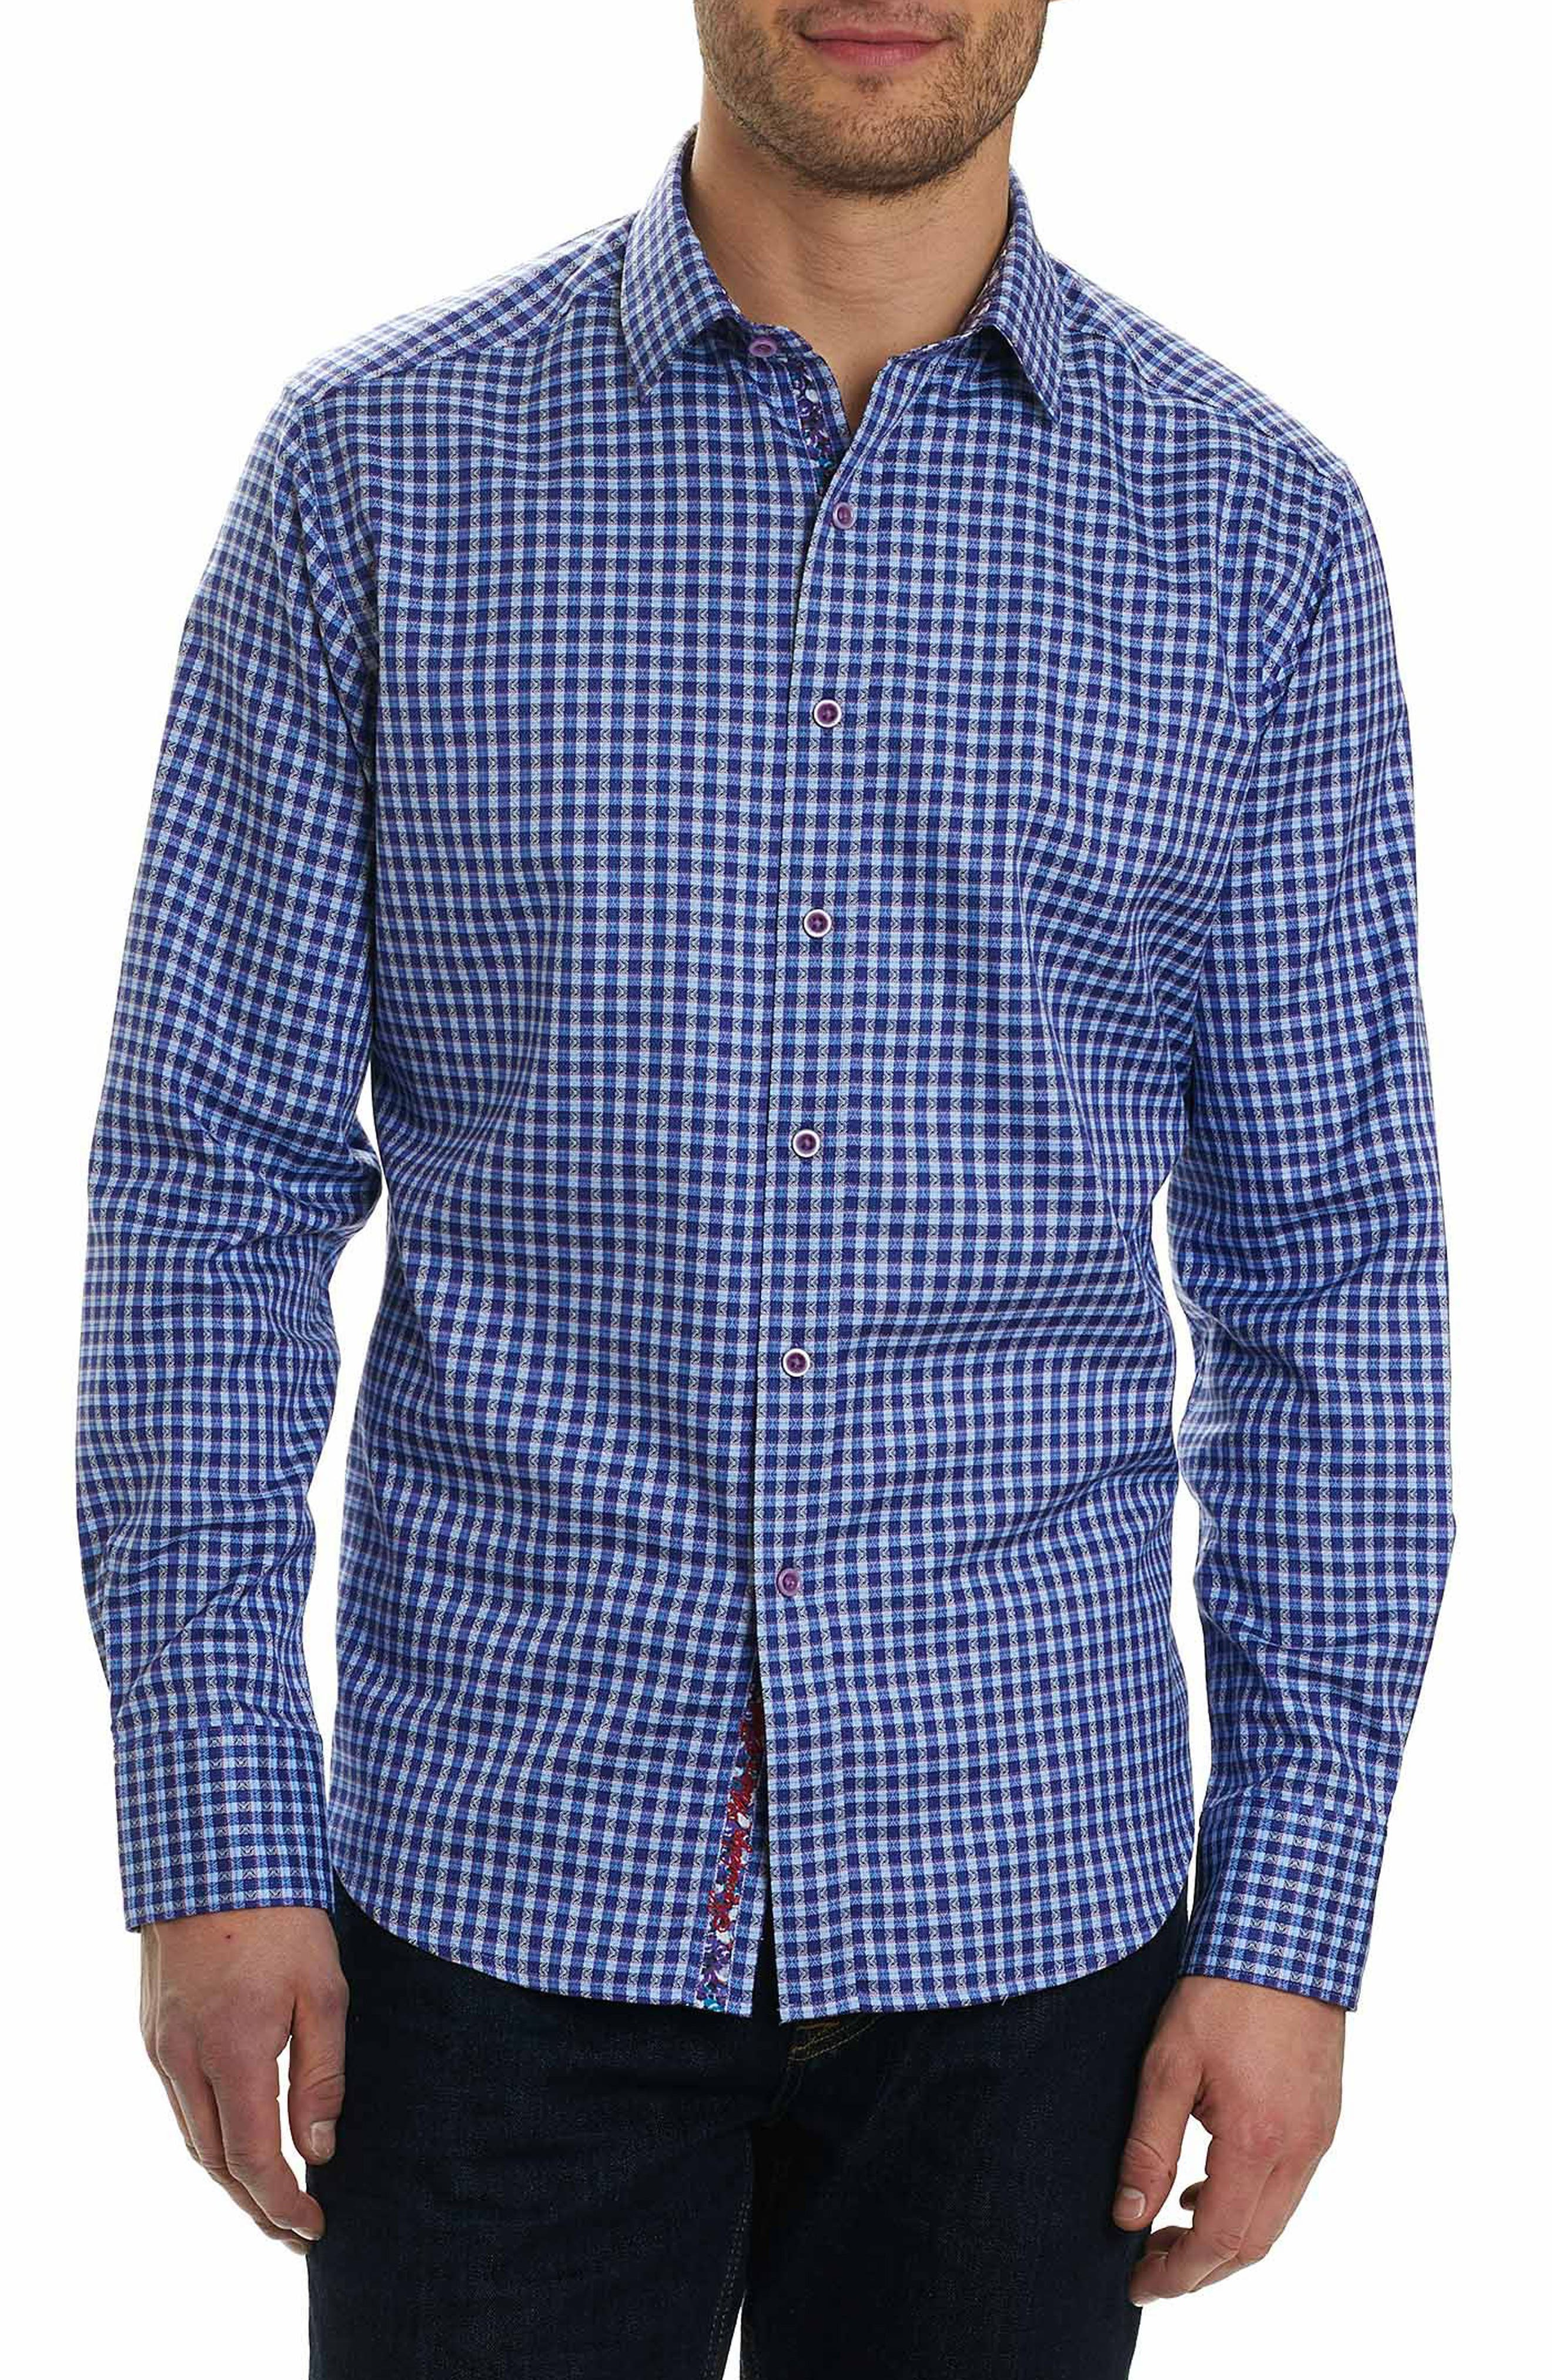 Matira Classic Fit Patterned Gingham Sport Shirt,                         Main,                         color, 510